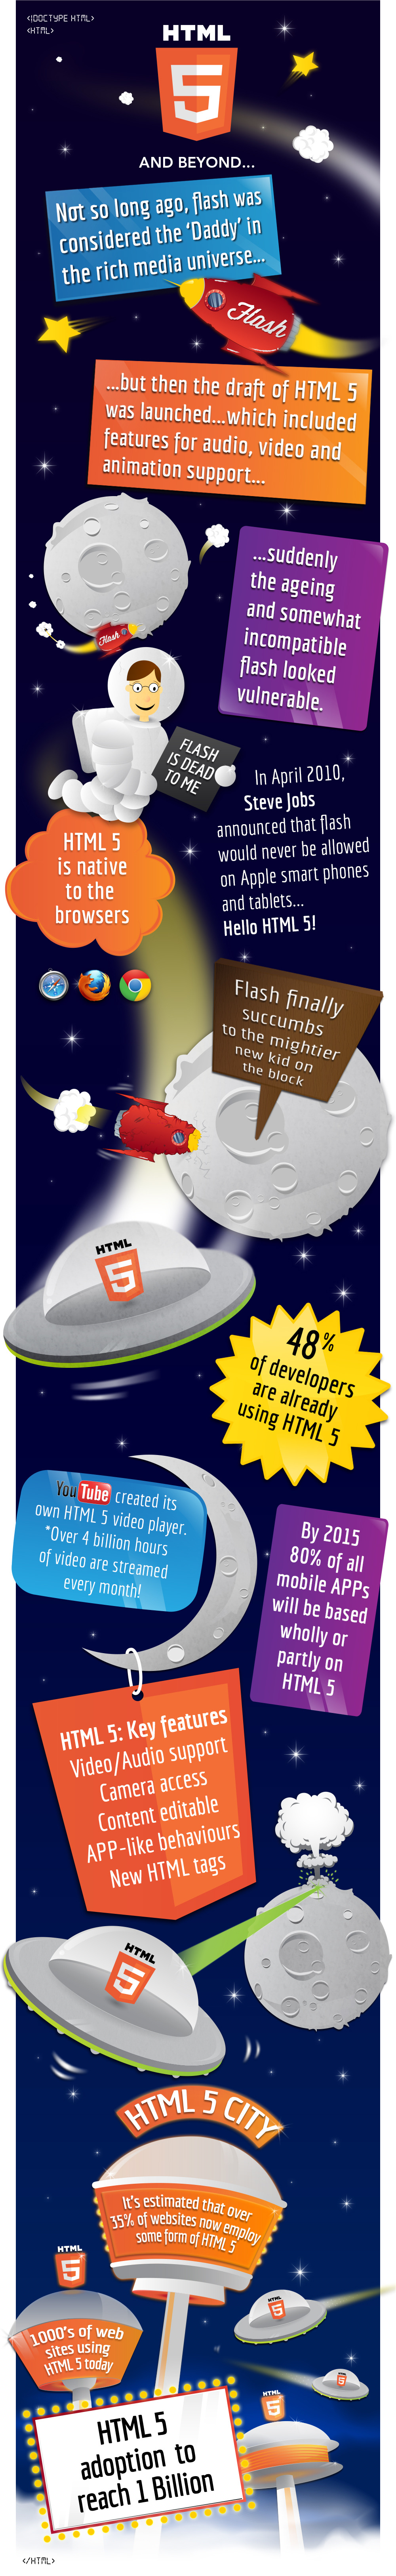 1000's of Sites Using HTML5